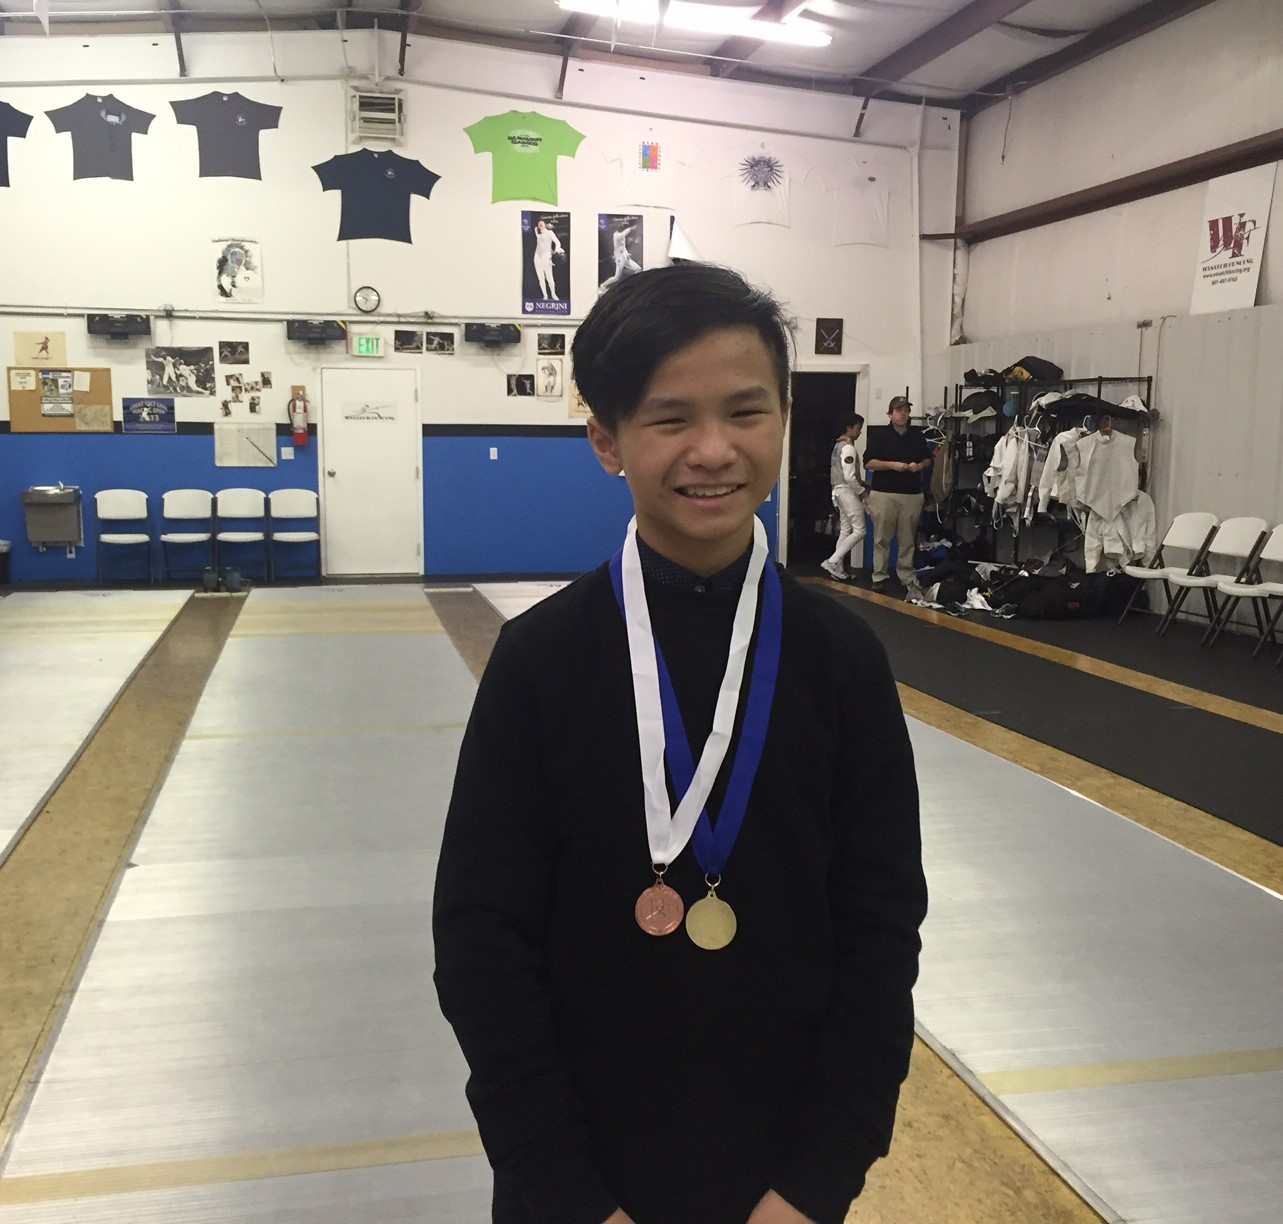 Medalling at a local youth tournament